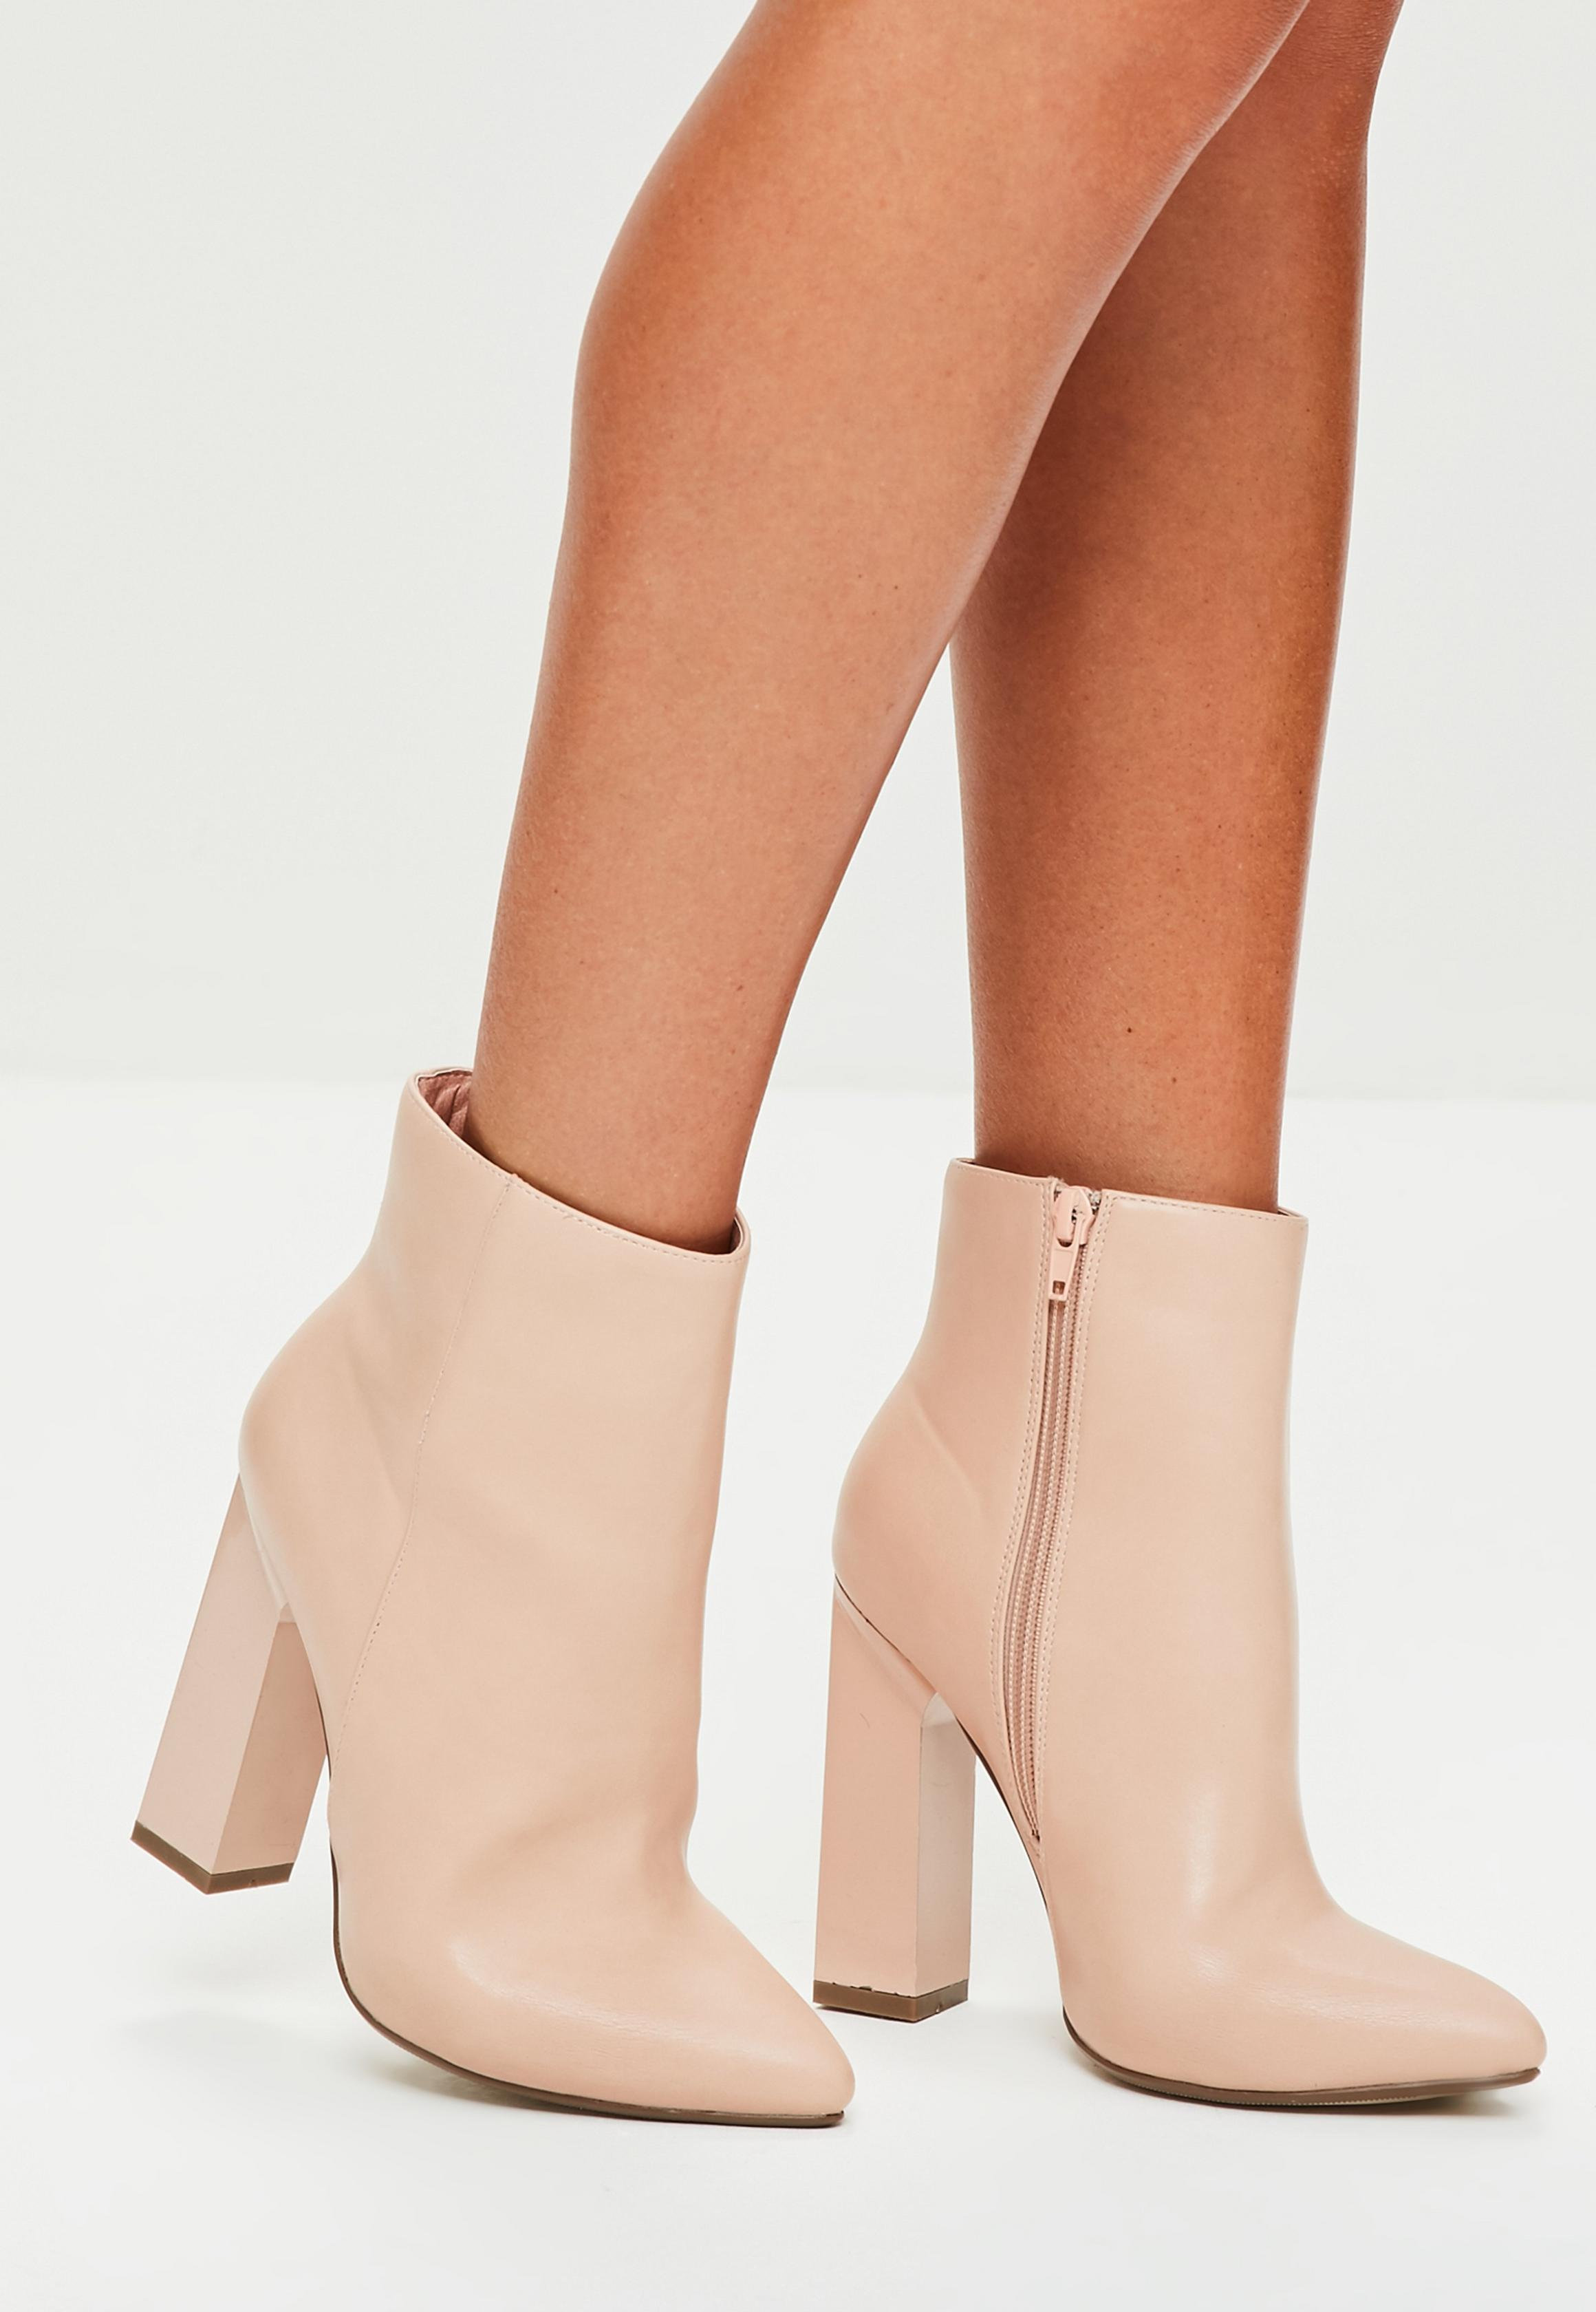 nude-feature-heel-pointed-boots.jpg